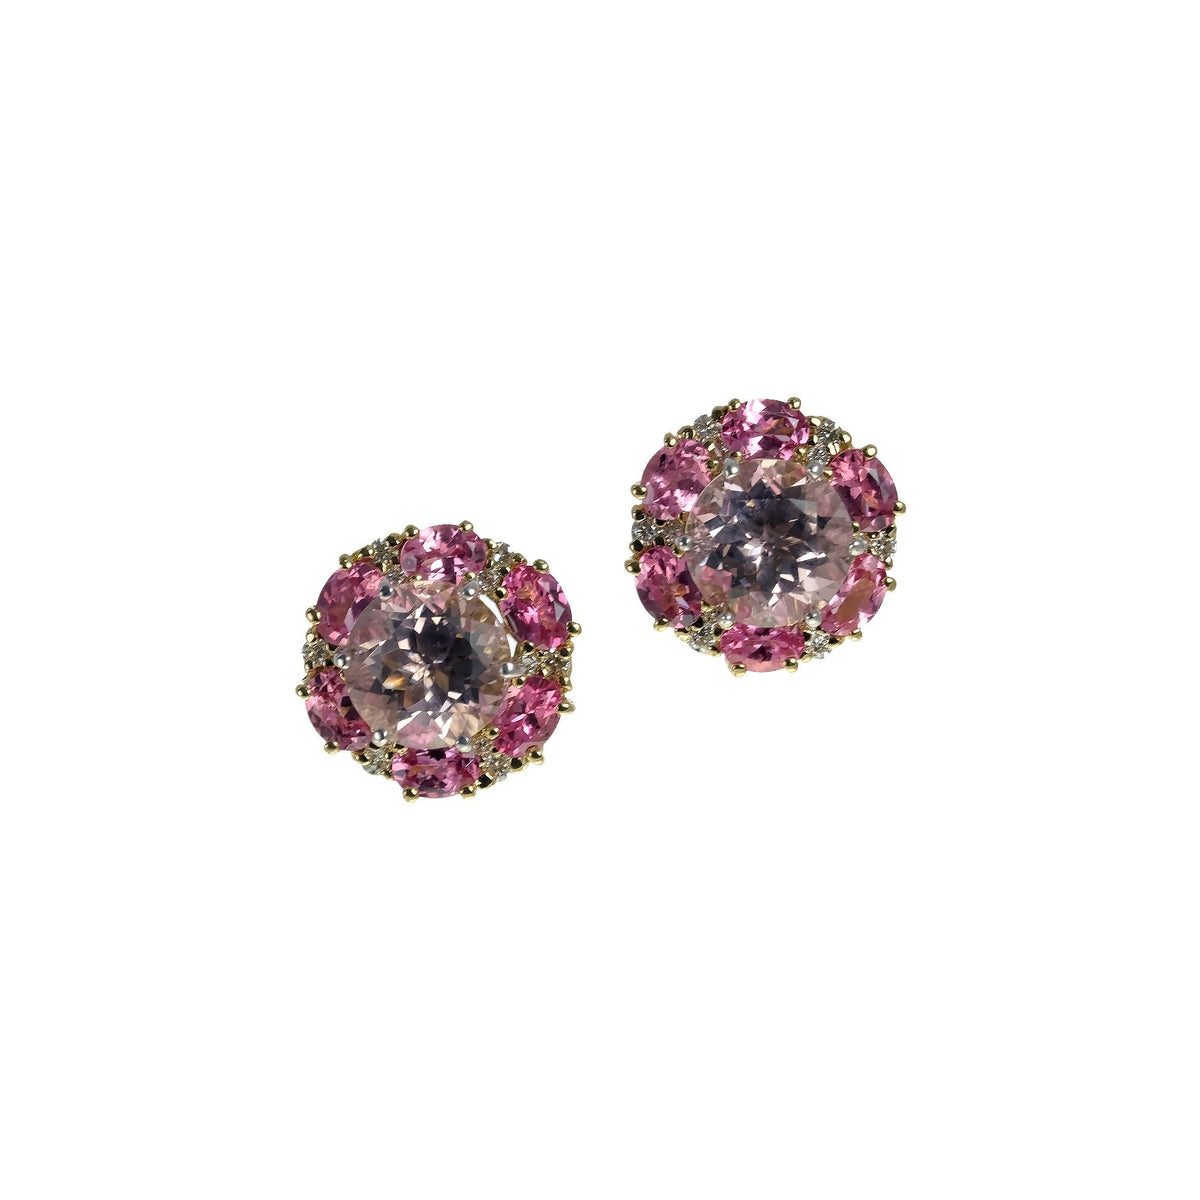 Pink Spinel Jacket, 13mm, YG